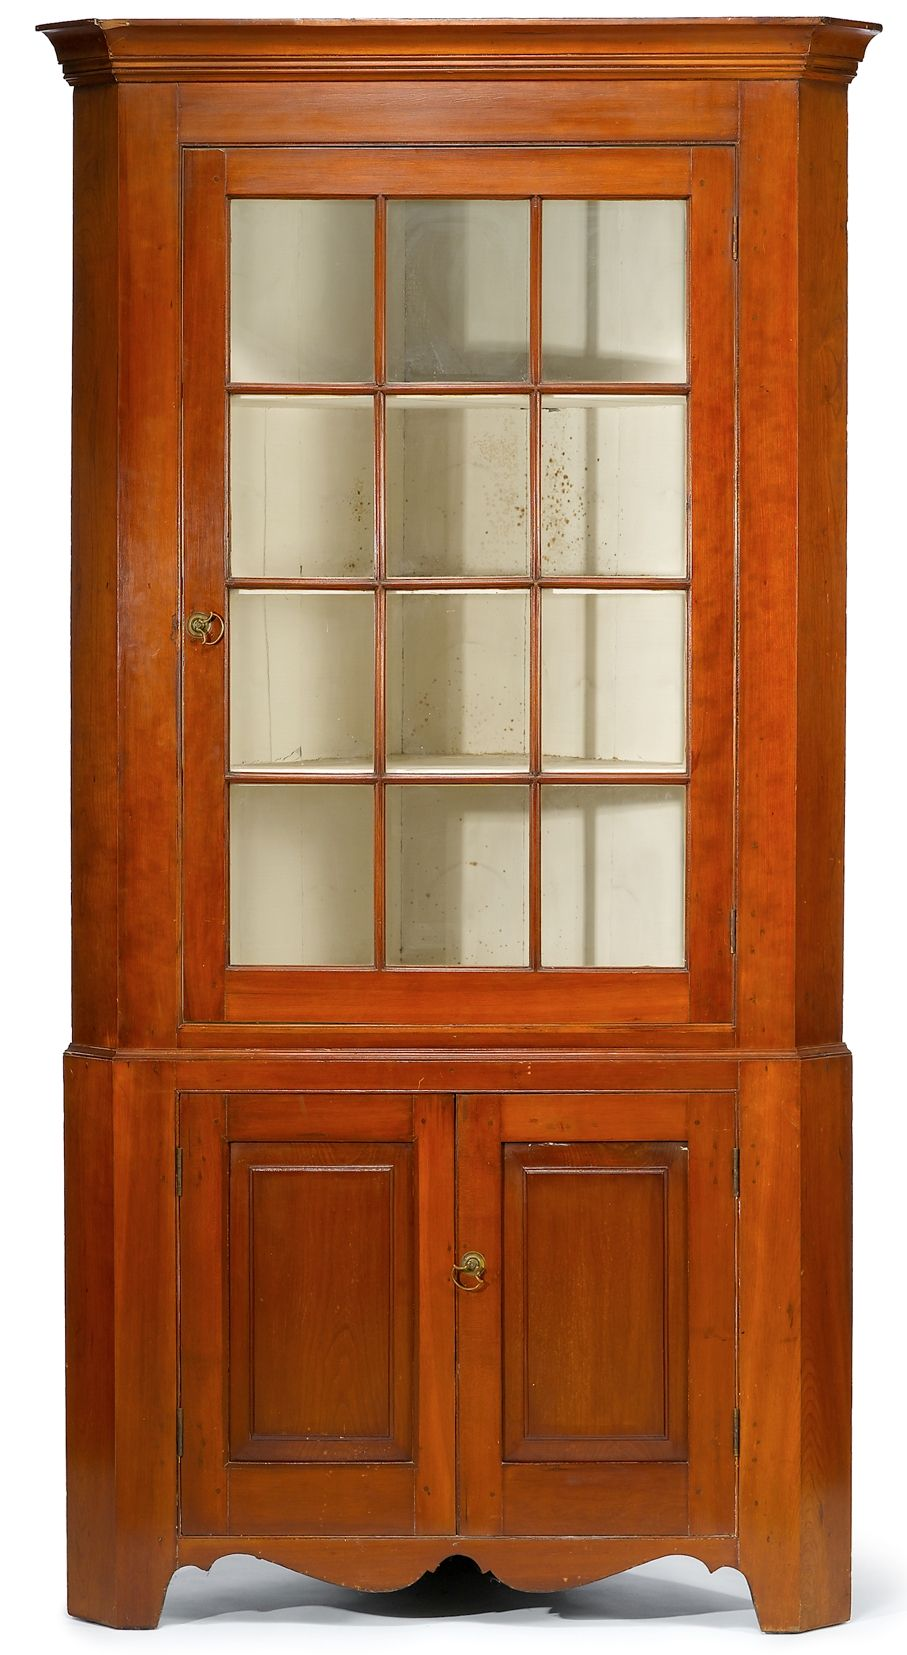 Superb Early 19th C American Cherry Corner Cupboard Of Pennsylvania Origin  Circa: 1800-1825 - For Sale - Superb Early 19th C American Cherry Corner Cupboard Of